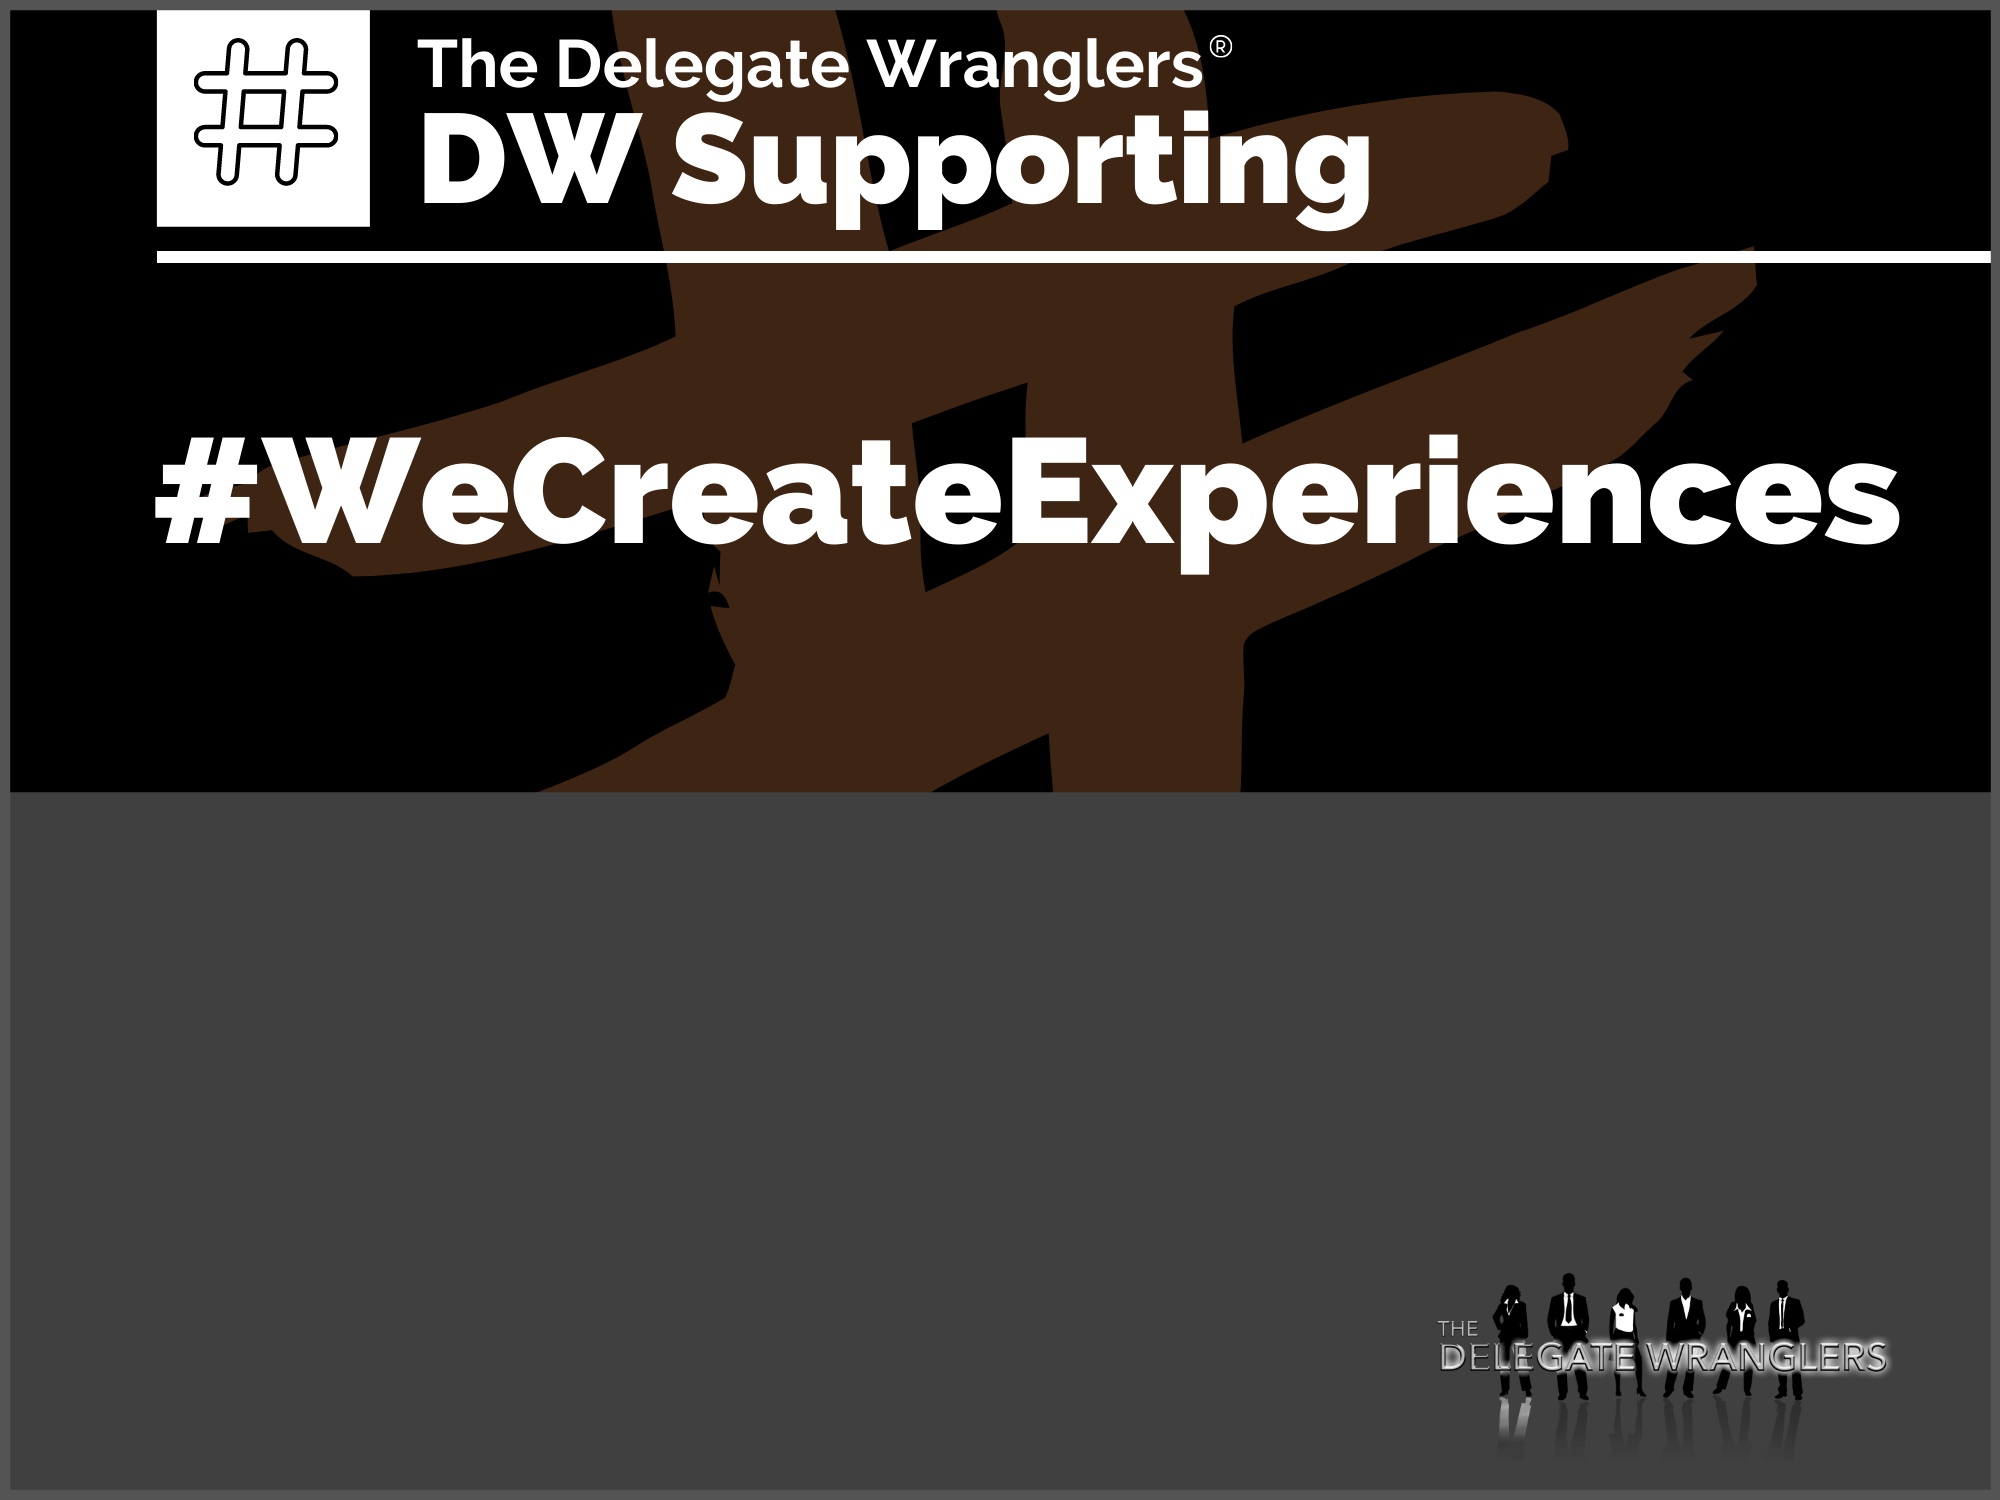 The Delegate Wranglers supporting industry campaign #WeCreateExperiences - which has already raised £30,000